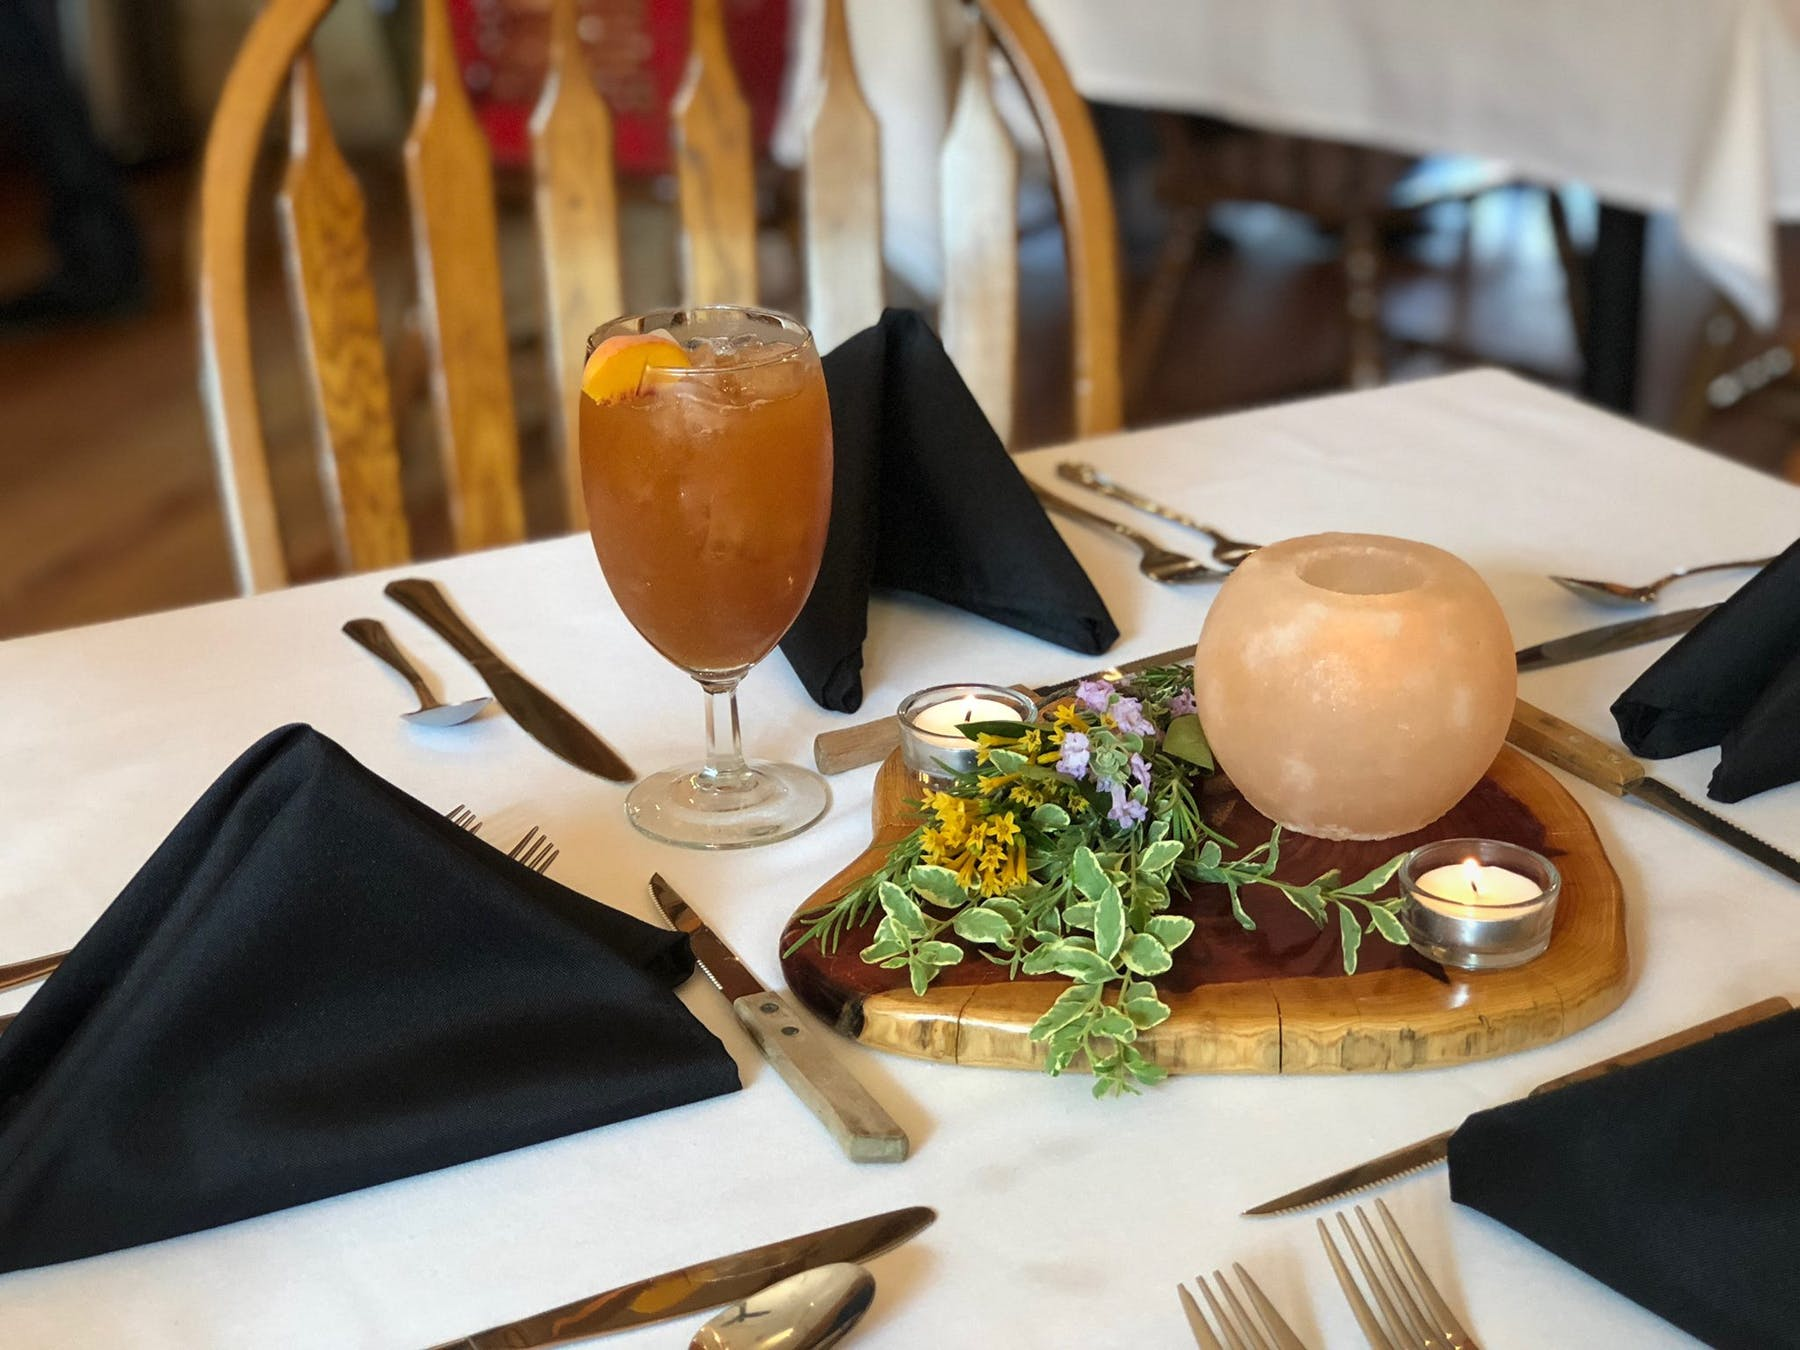 a table topped with silverware utensils and a cup of iced tea